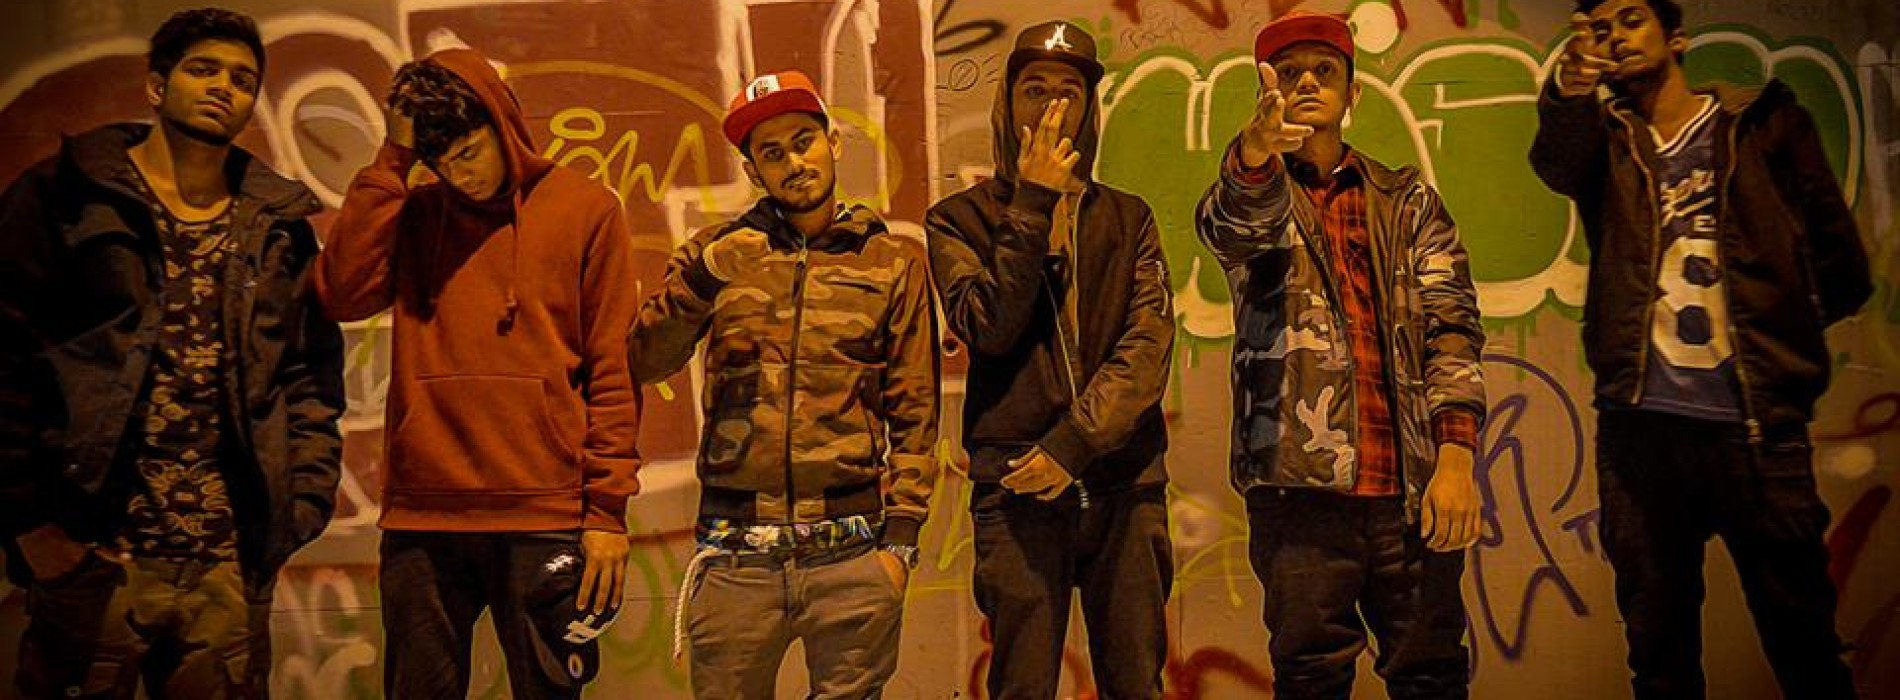 TroubleMakers Gang – Never (official music video)